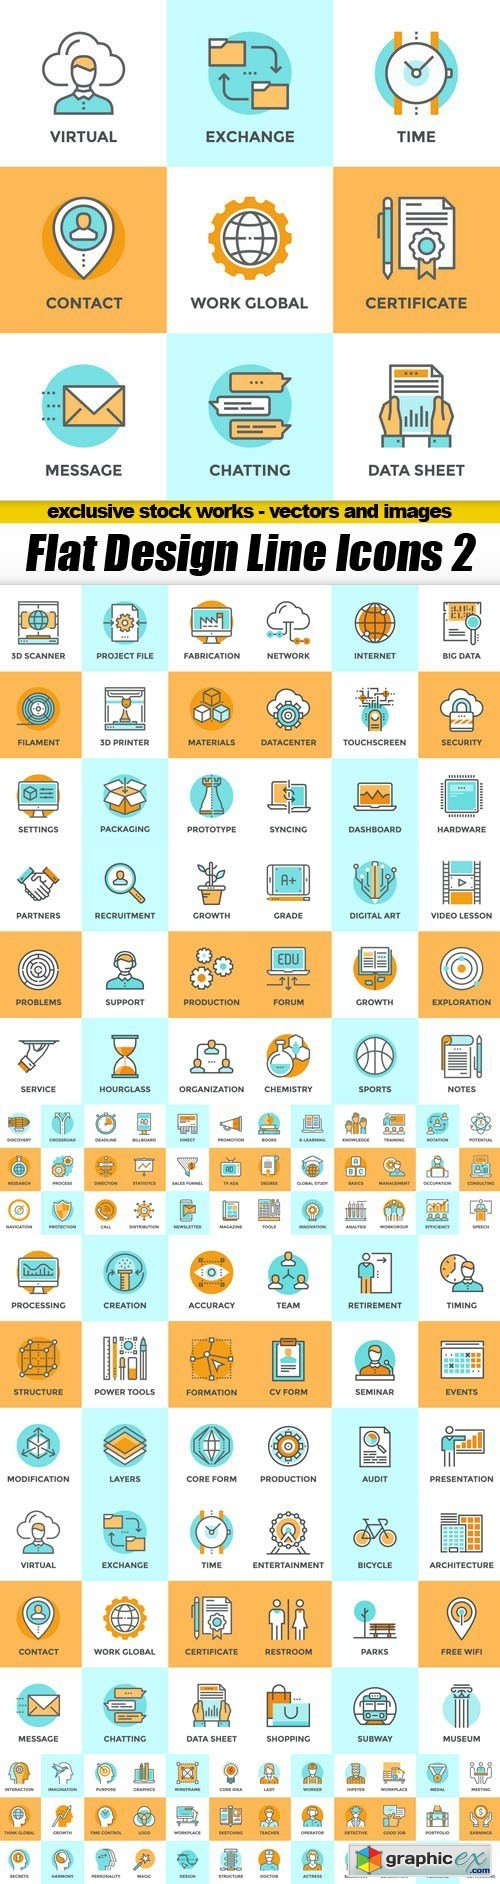 Flat Design Line Icons 2 - 16xEPS